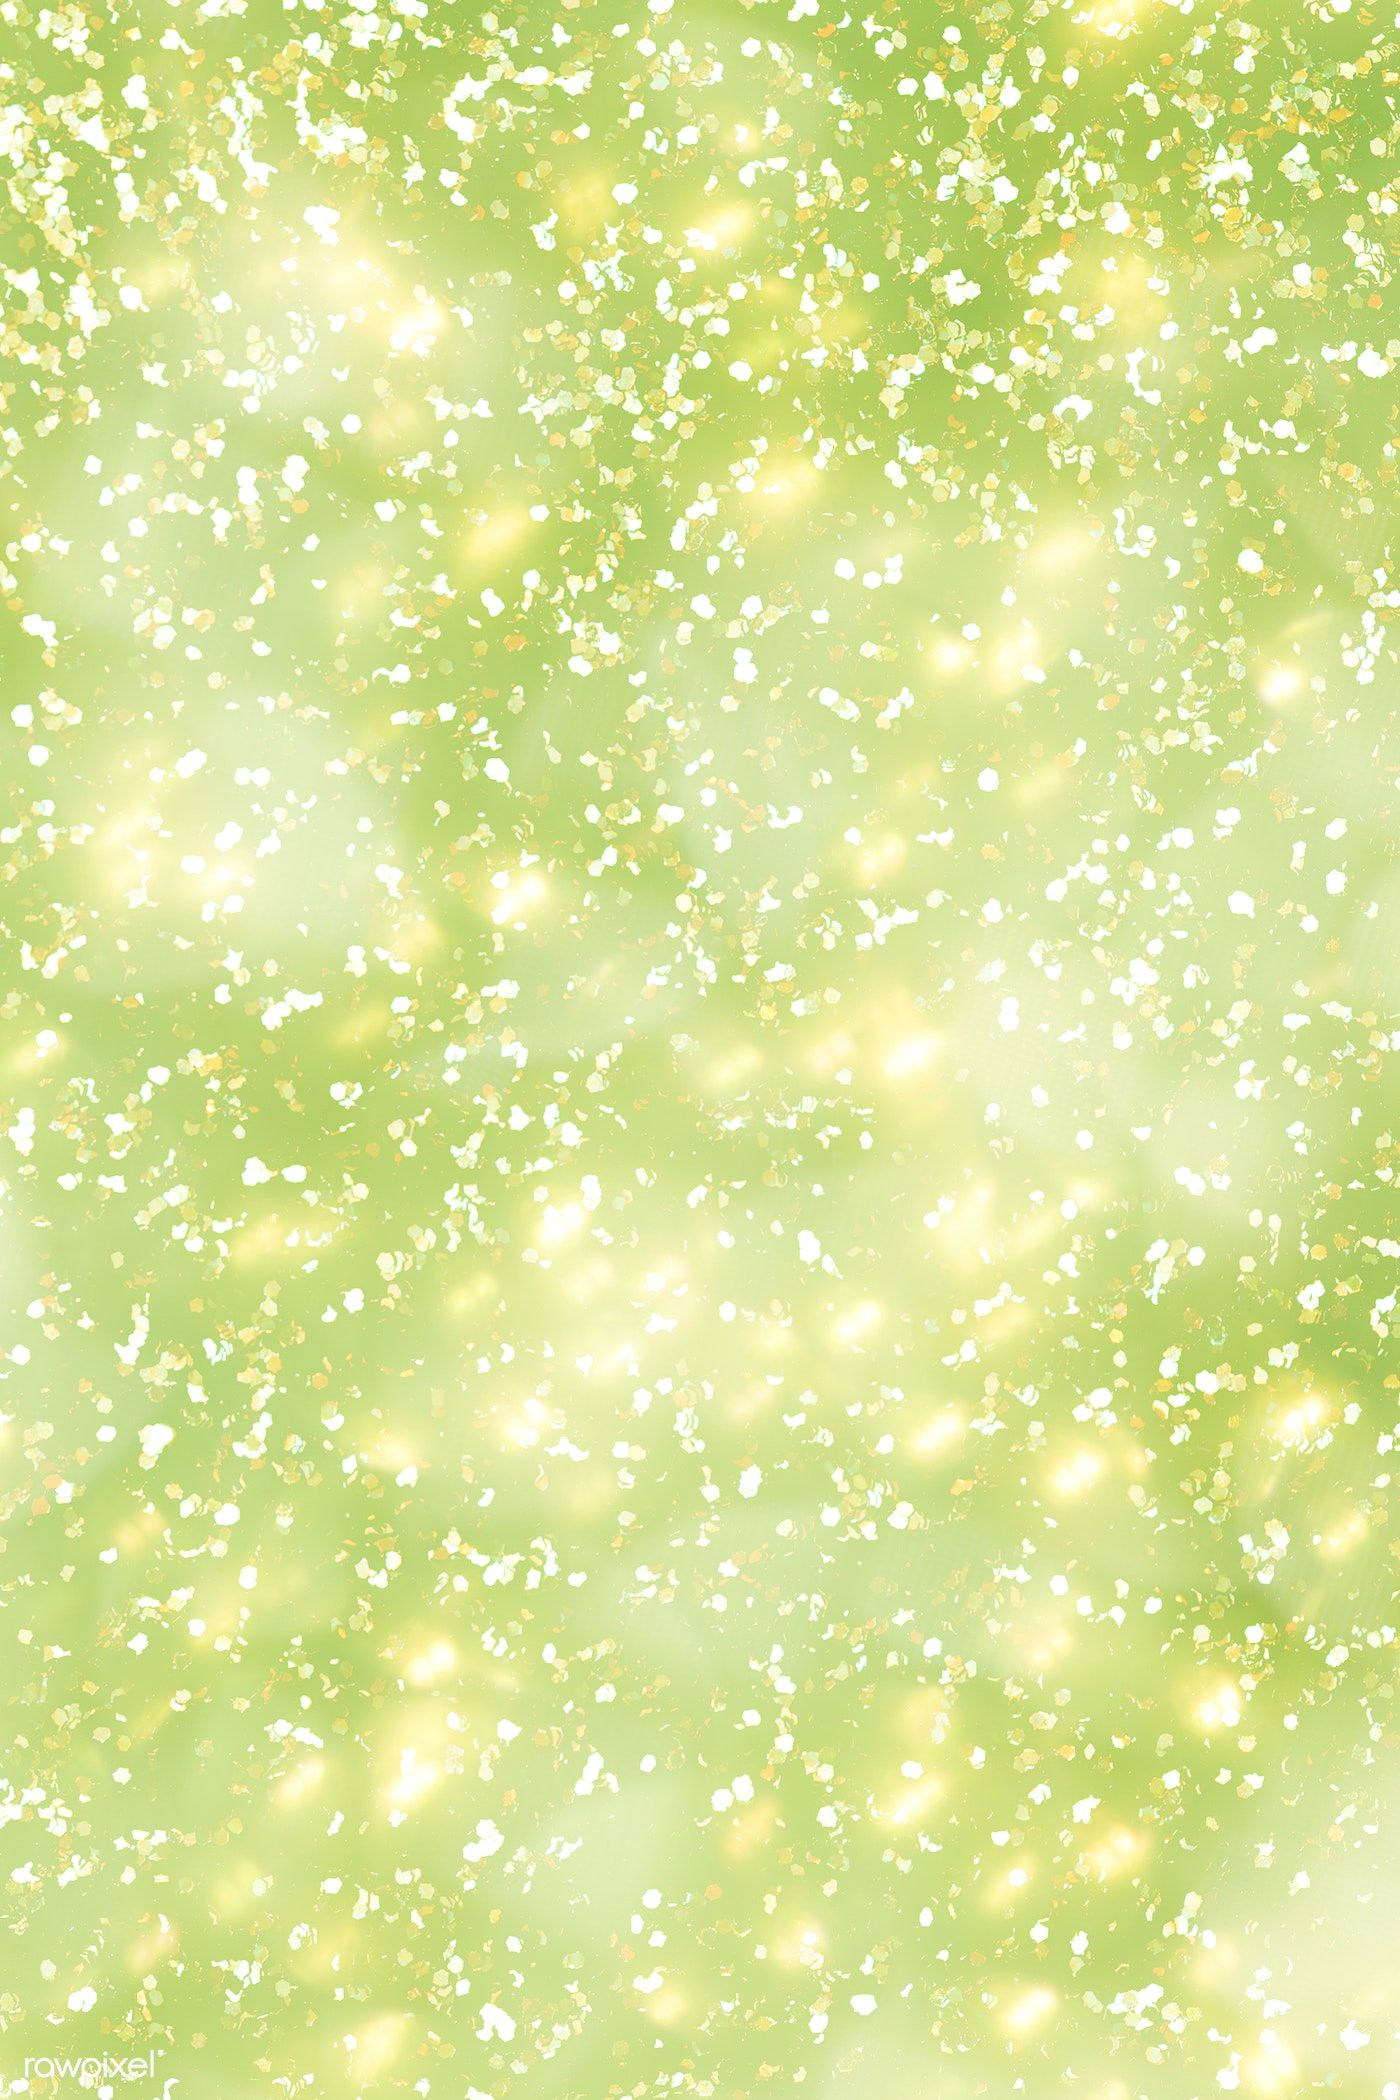 Yellow glitter on a lime green background free image by